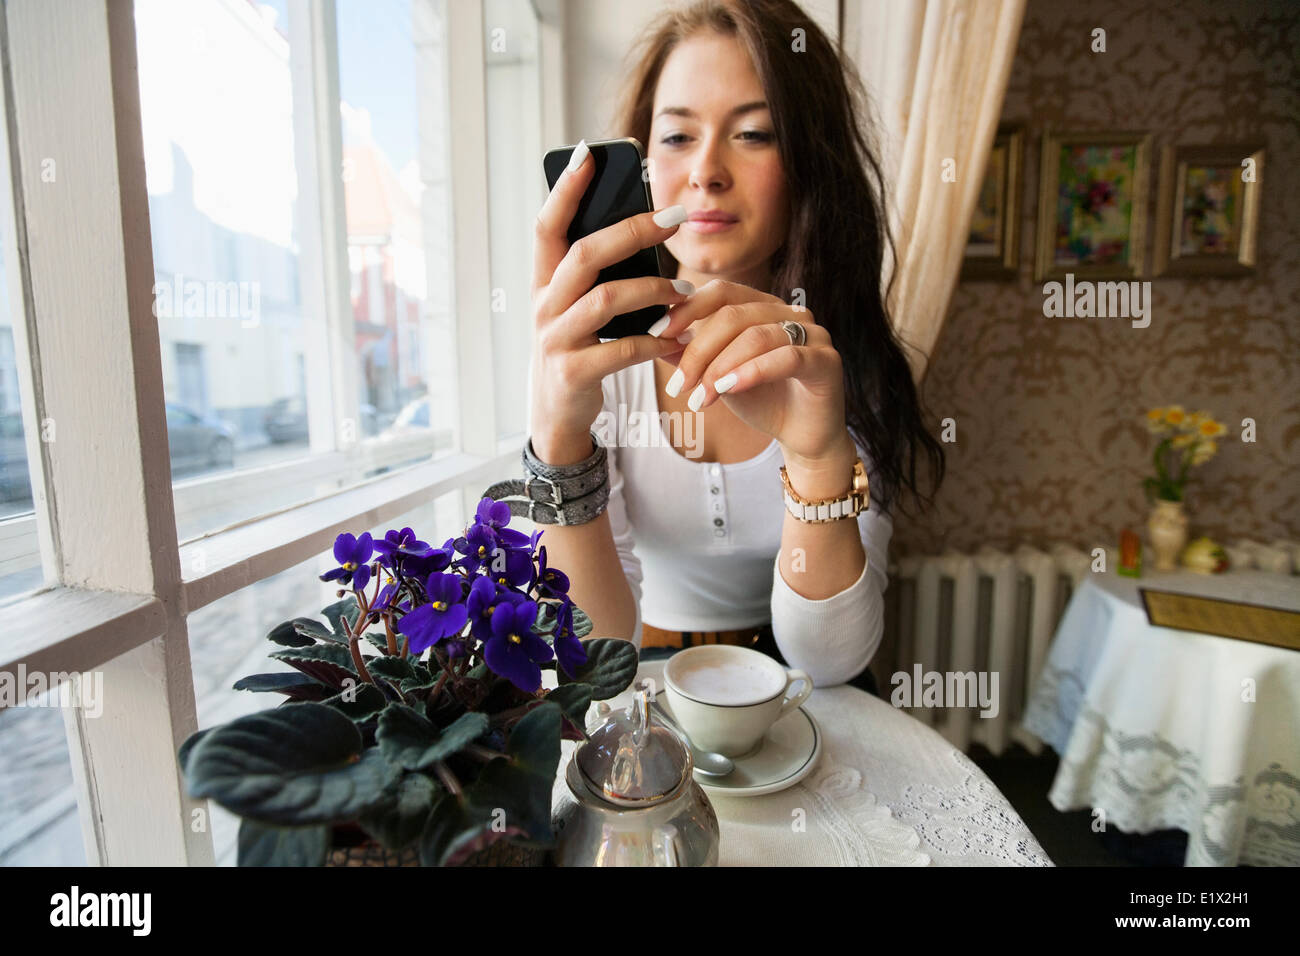 Young woman using smart phone at cafe table Stock Photo